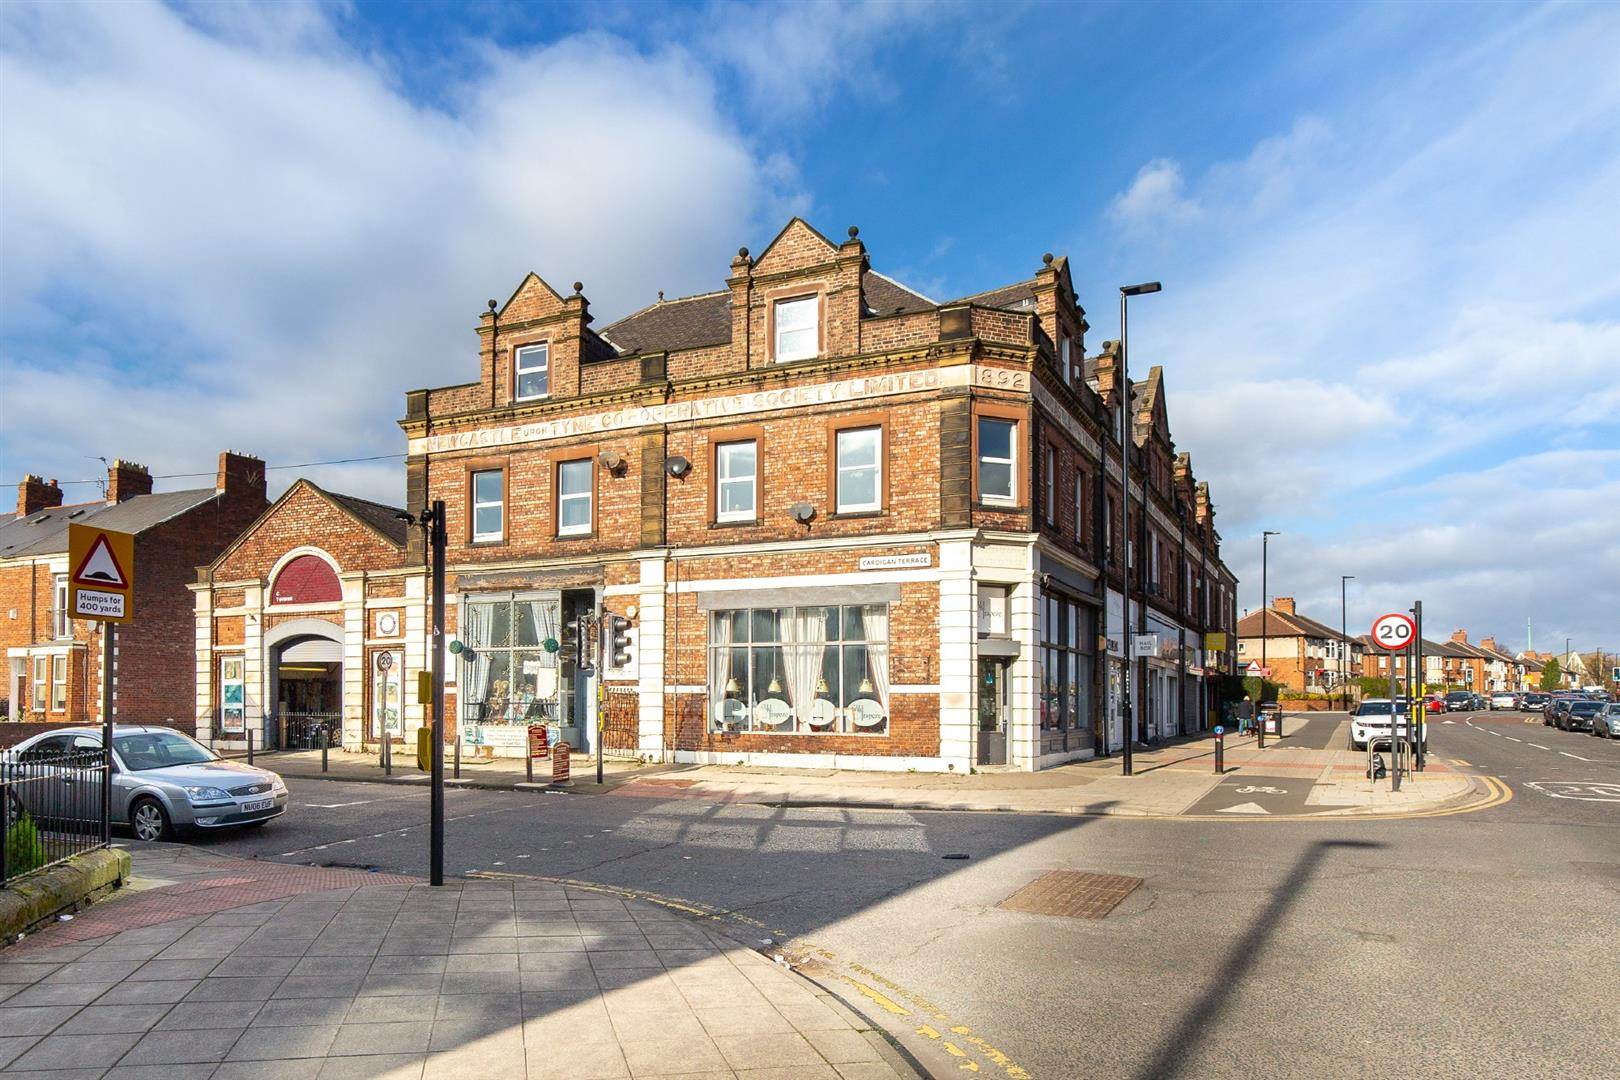 6 bed apartment for sale in Heaton, NE6 5HH - Property Image 1